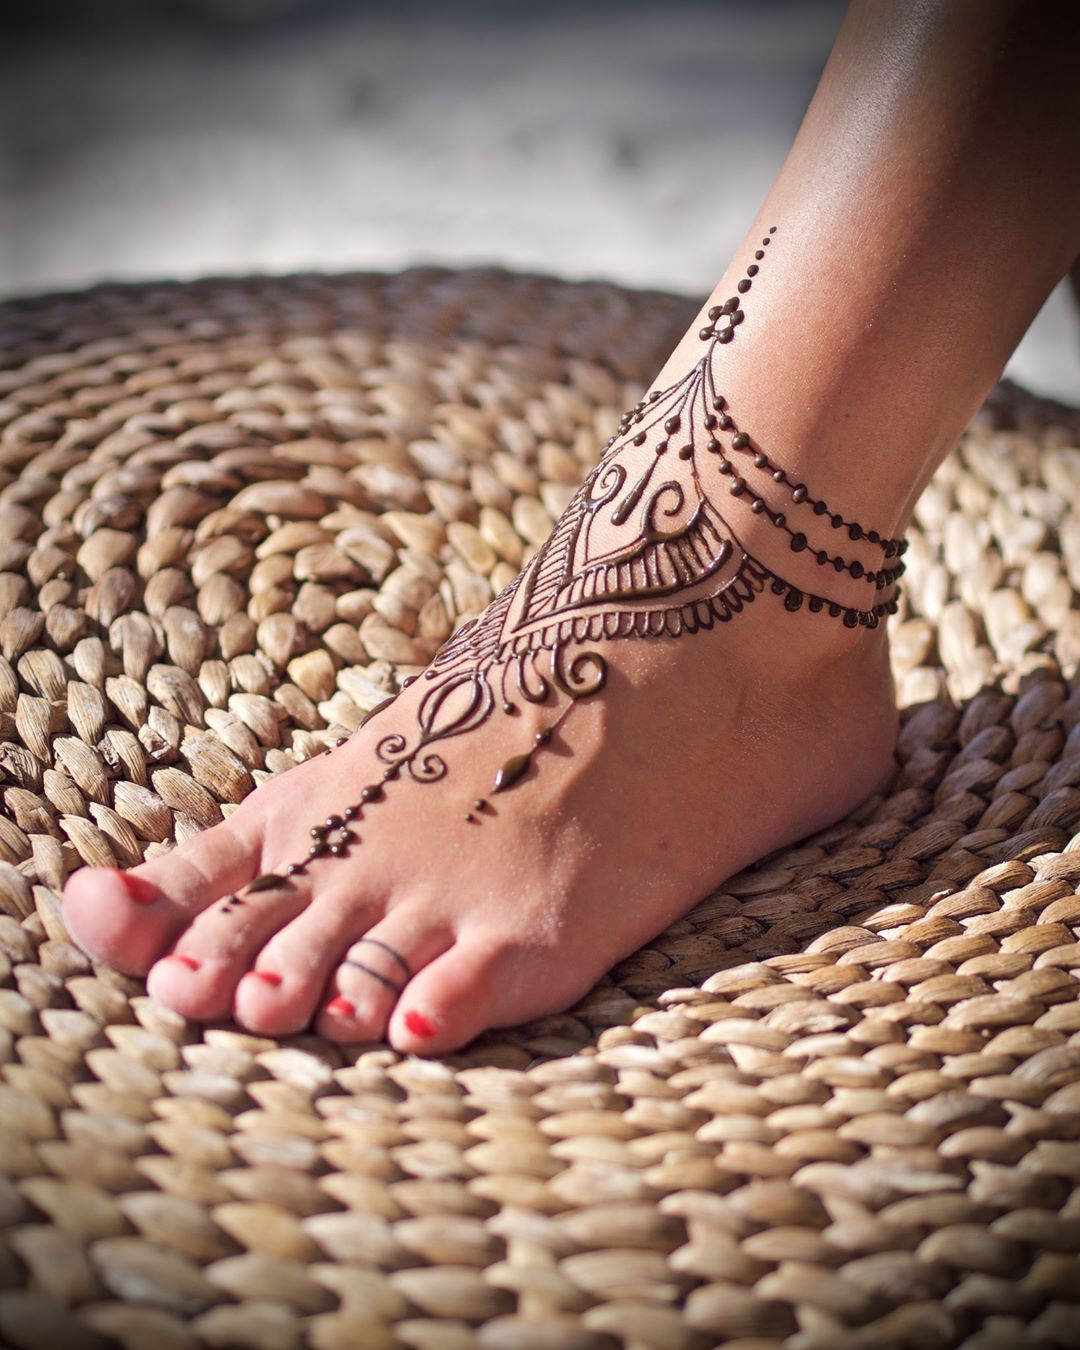 20 of the Prettiest Feet Mehendi Designs of All Time!